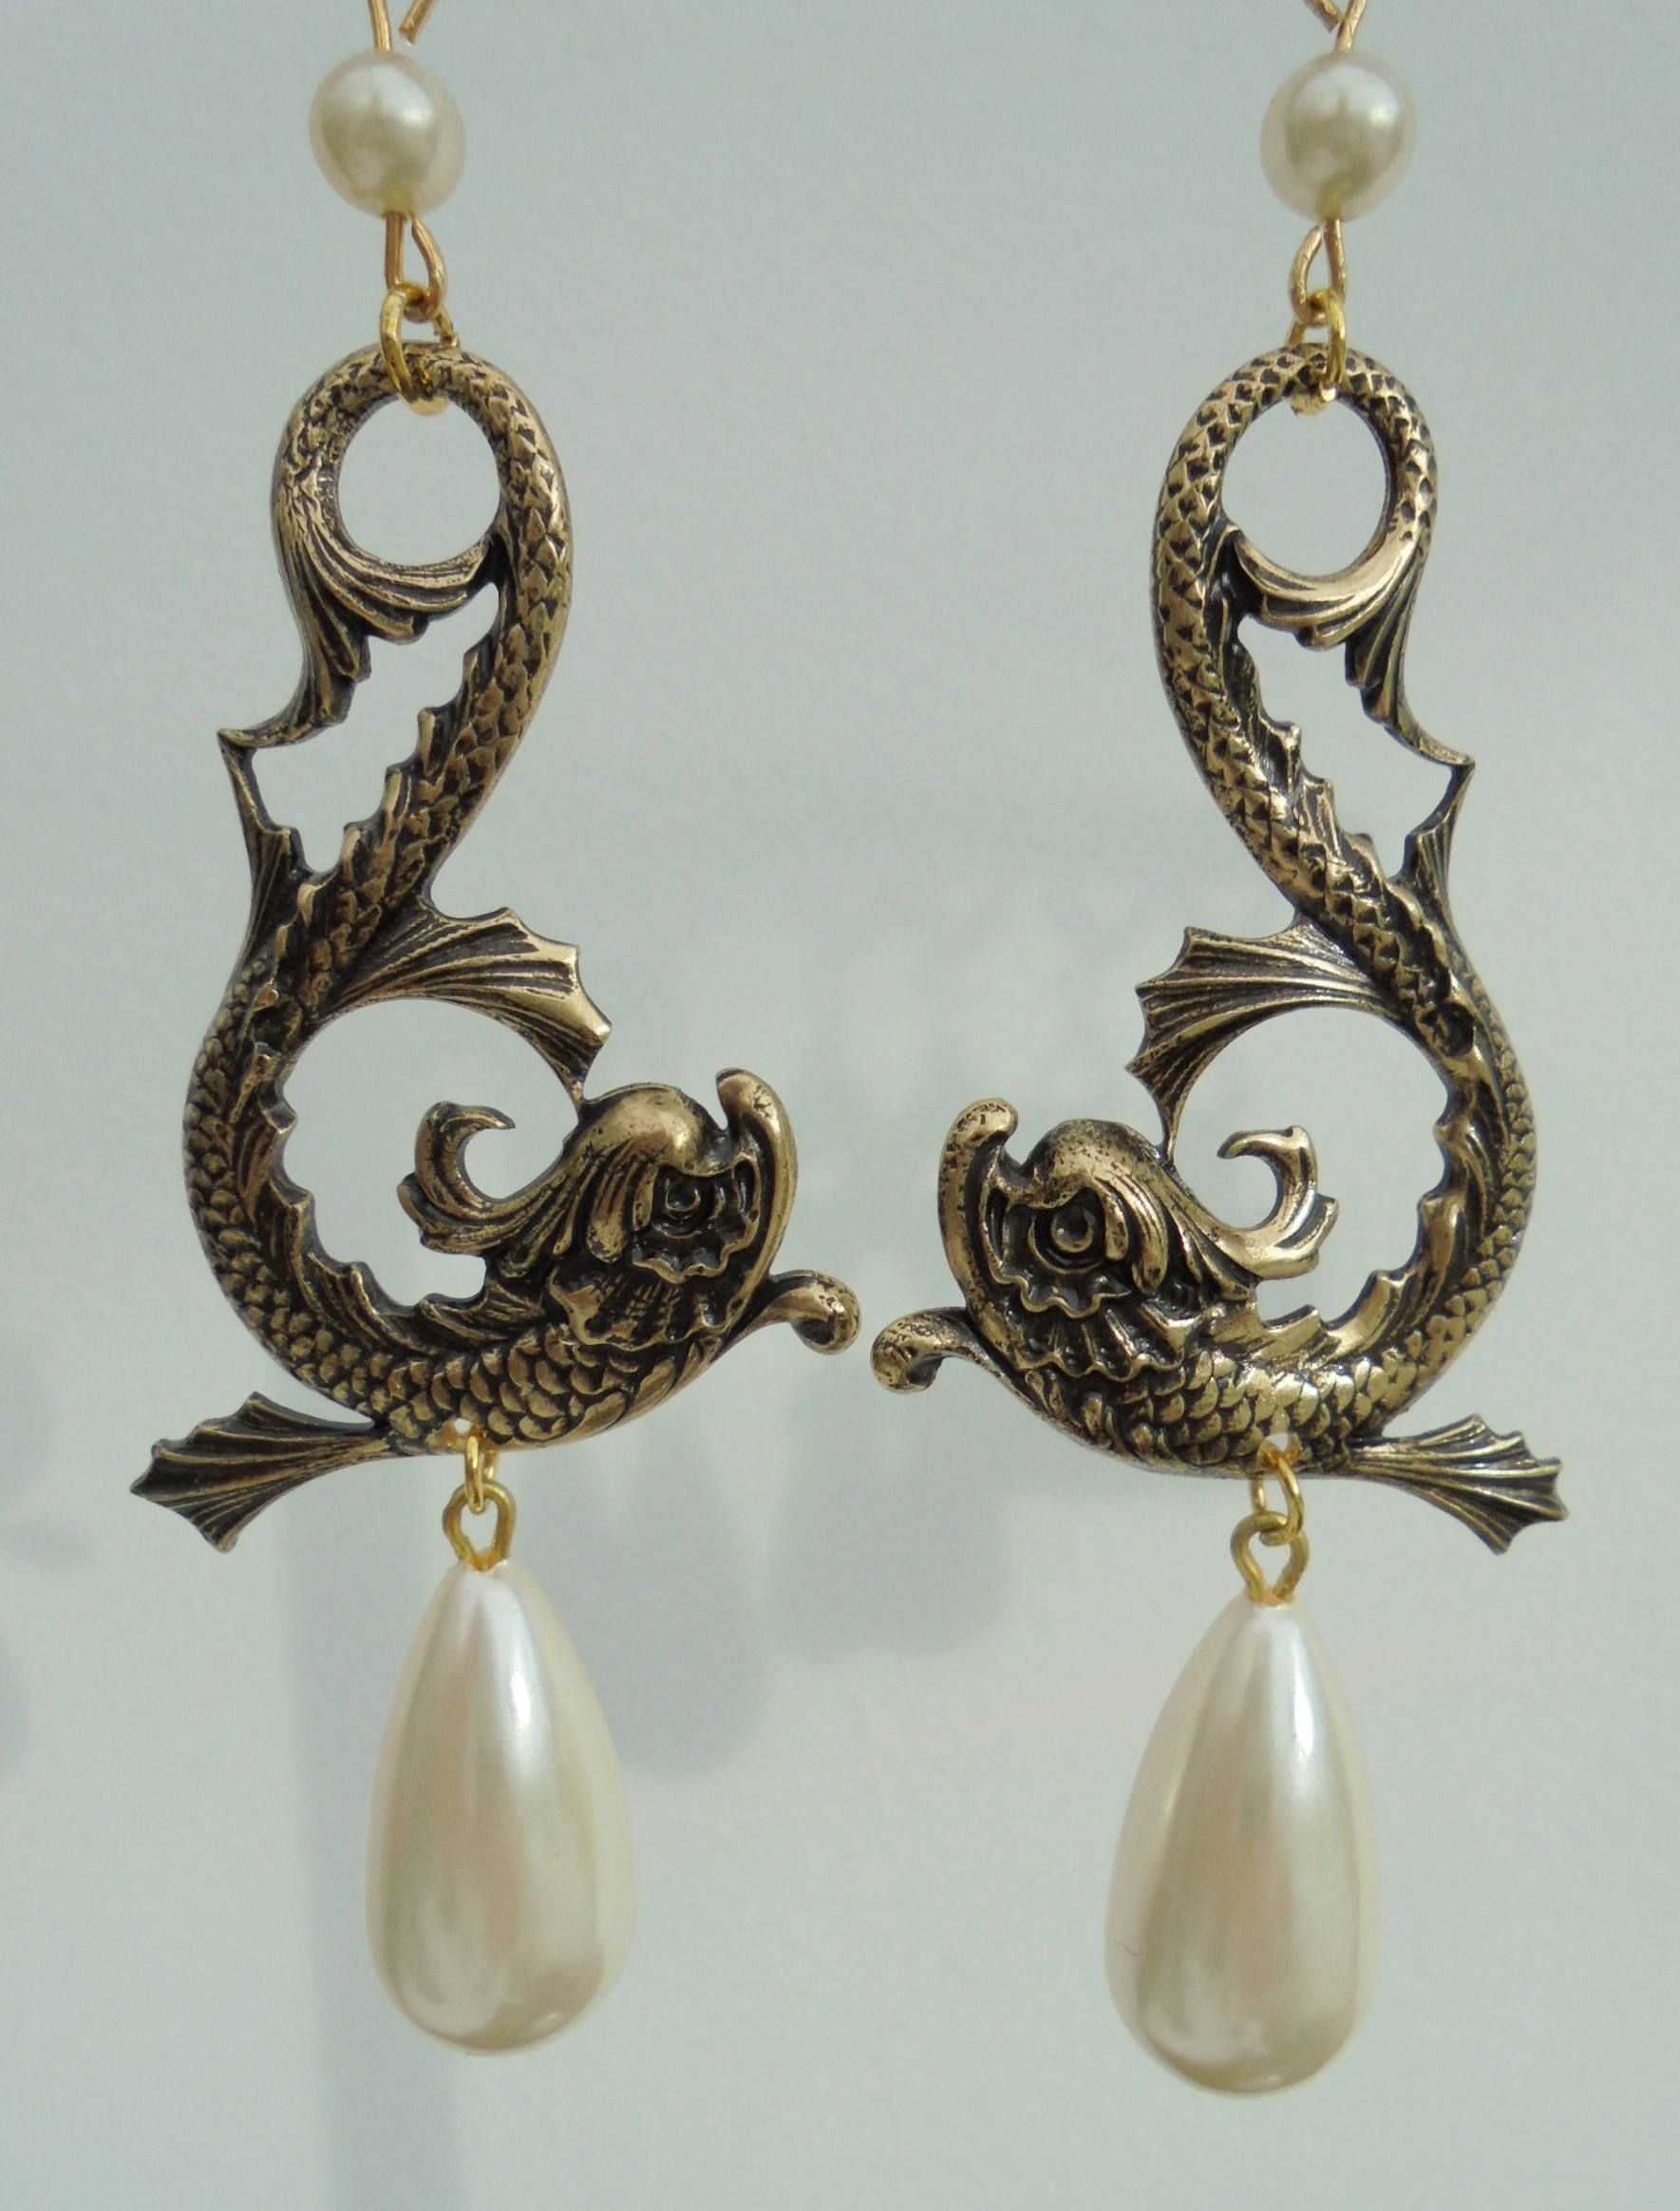 europe gold to early full art nouveau expand sold item click in eastern earrings